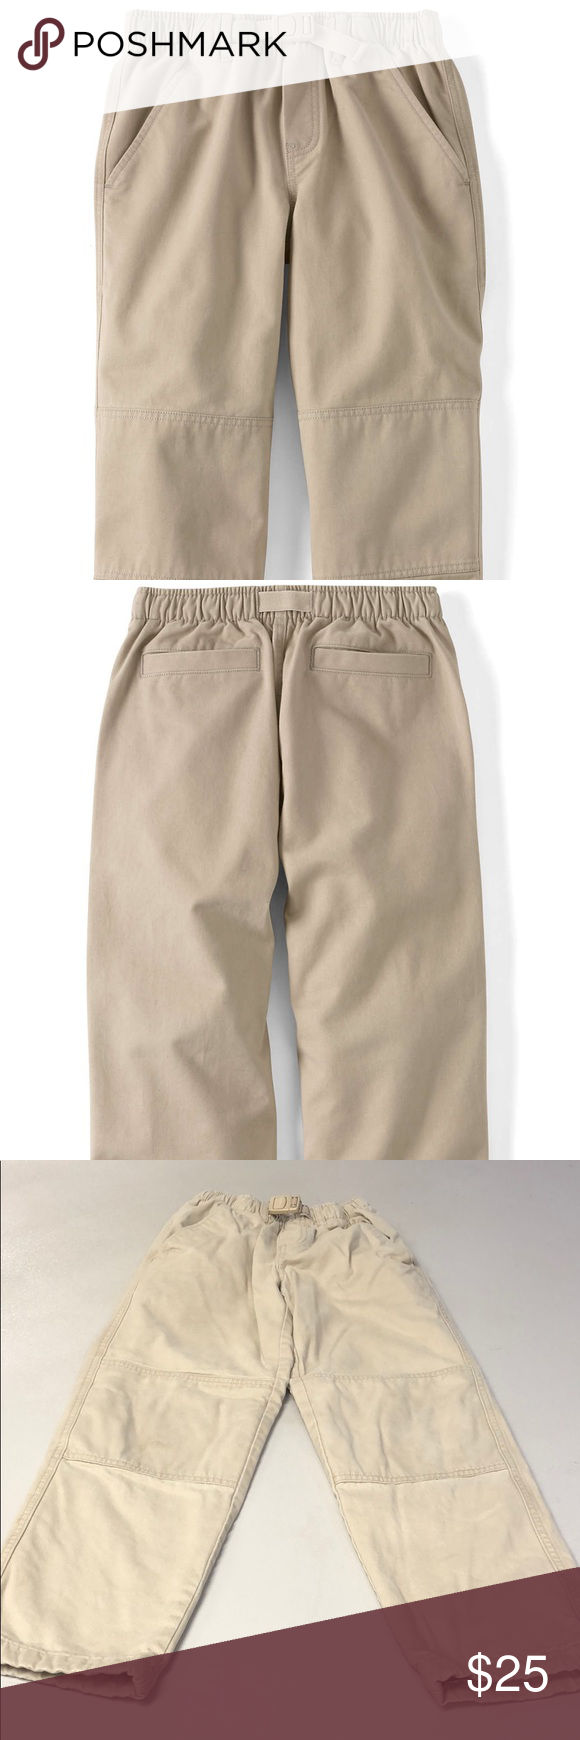 41cdc7f70 Lands' End Kids Boys Lined Khaki Pants Bundle and Save on shipping too Lands'  End Kids Boys Lined Khaki Pants Boys Iron Knee Pull On Climber Pants ...